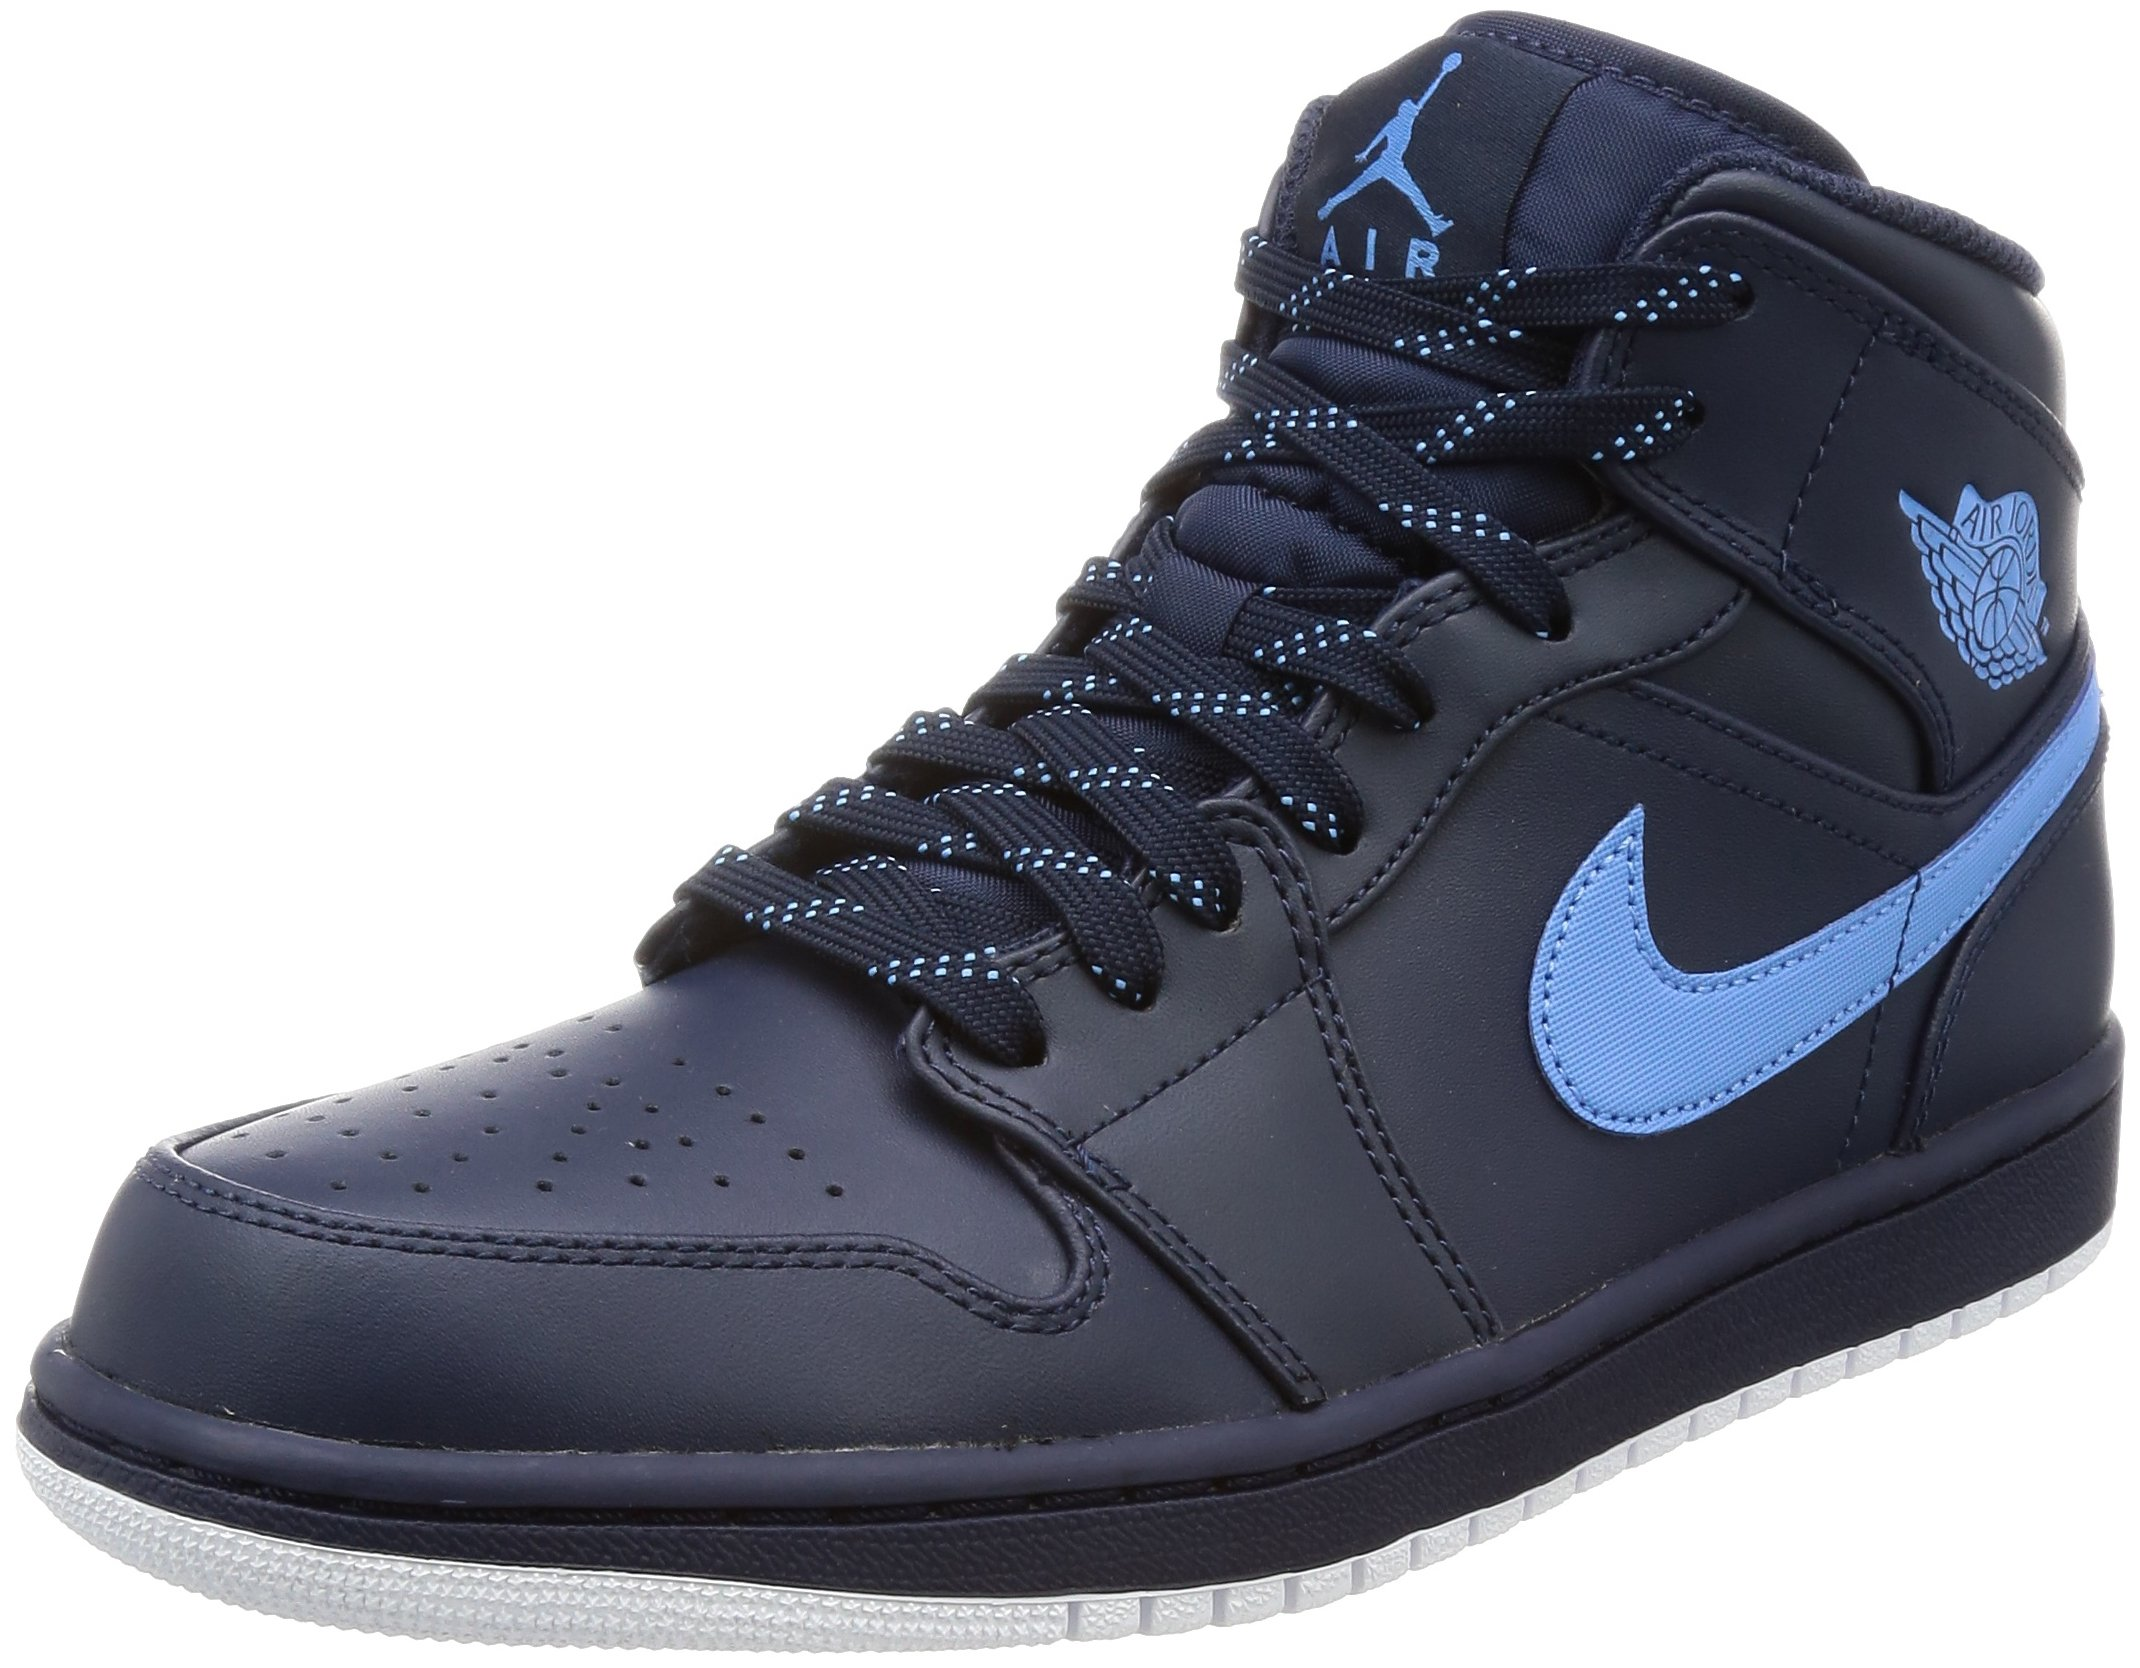 JORDAN MENS AIR JORDAN 1 MID OBSIDIAN UNIVERSITY BLUE WHITE SIZE 8 by Jordan